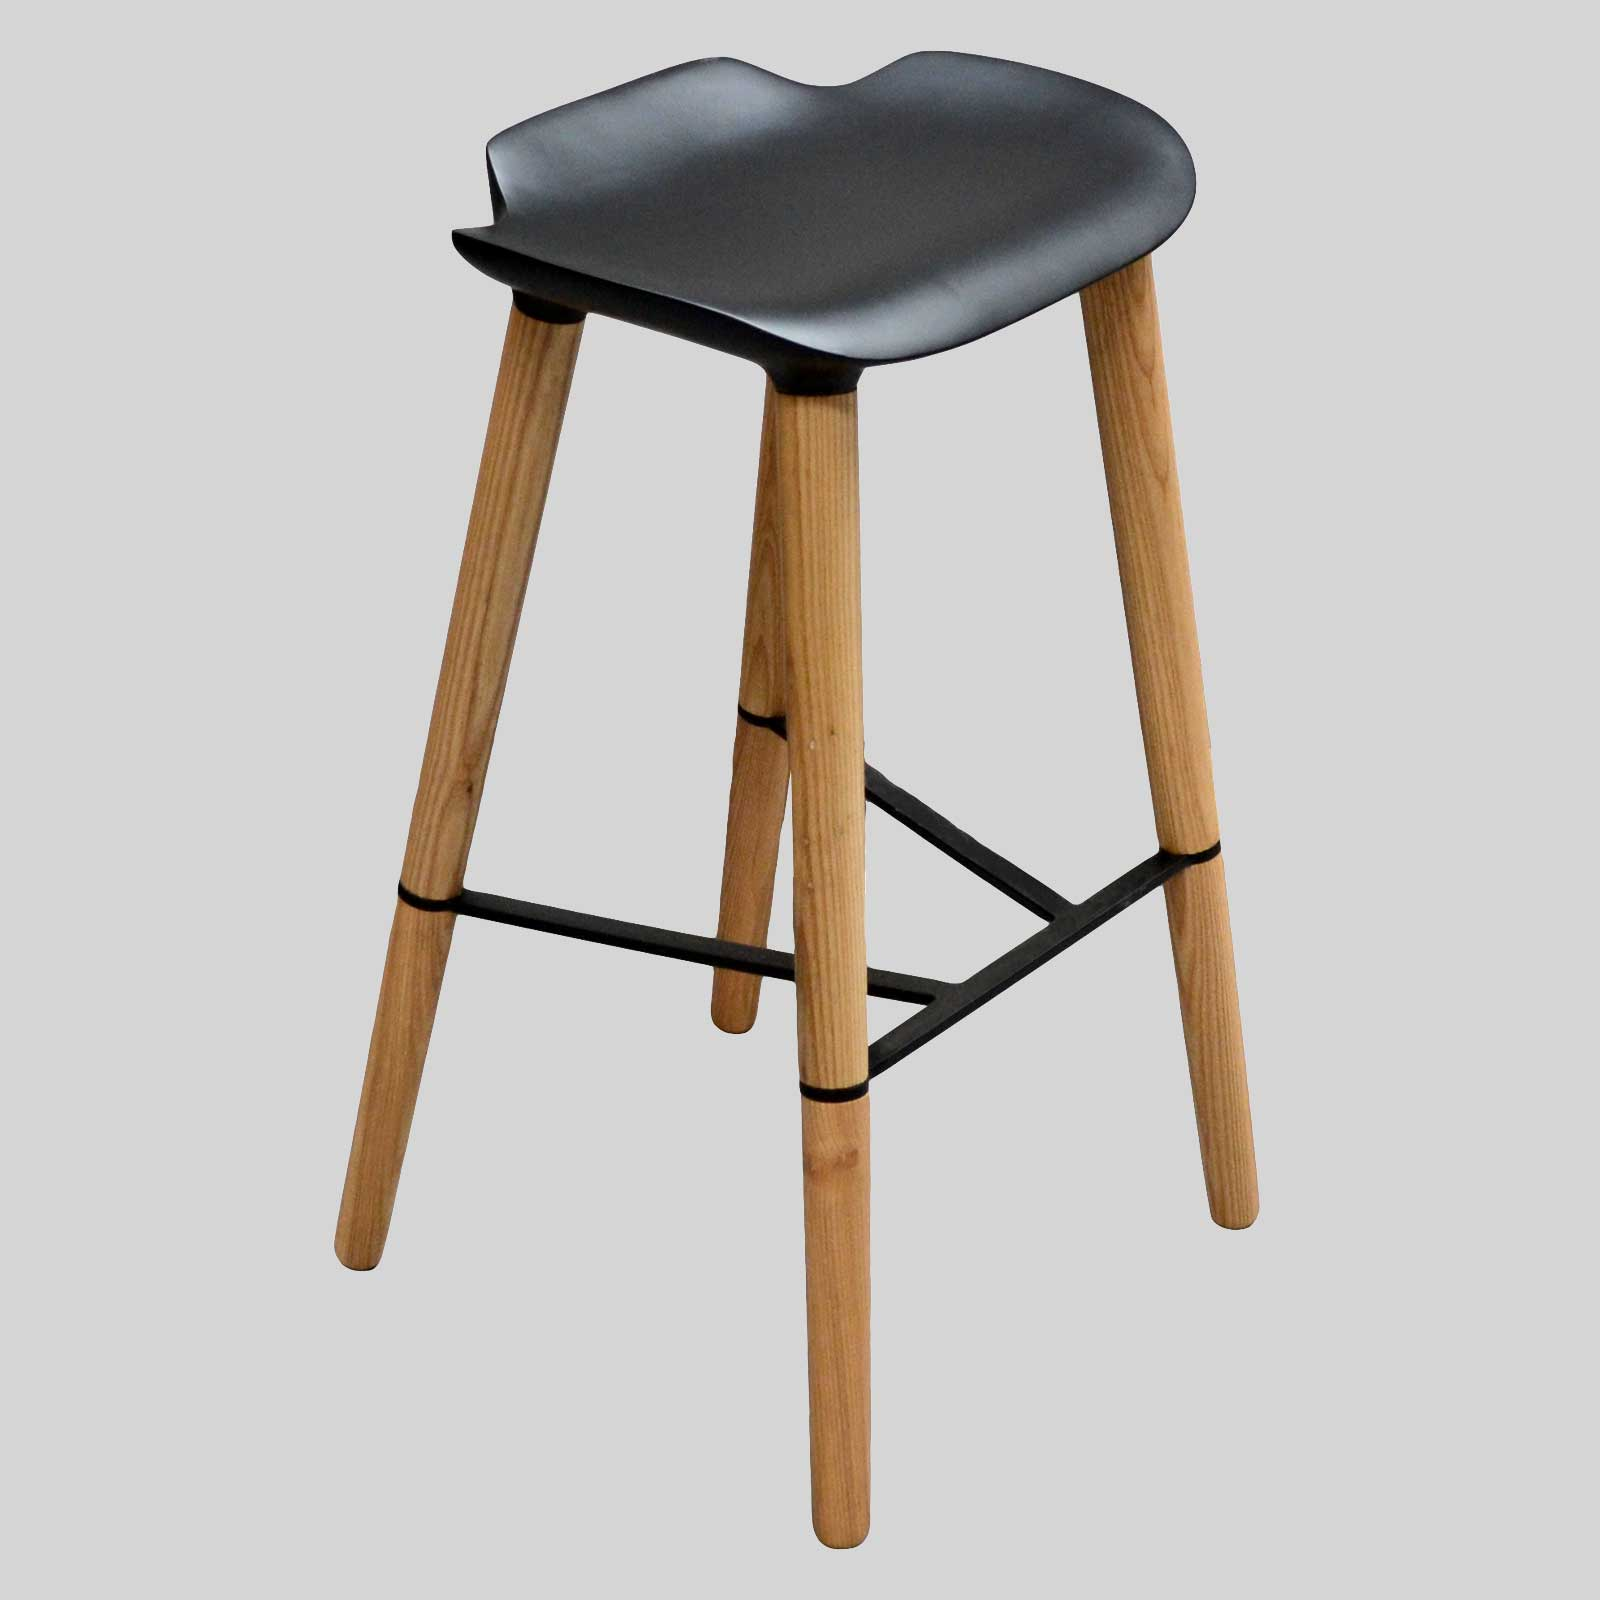 Leather Bar Stools Australia Bar Stool Chair With Wheels 2 Bar Stools Oak Wood Wooden